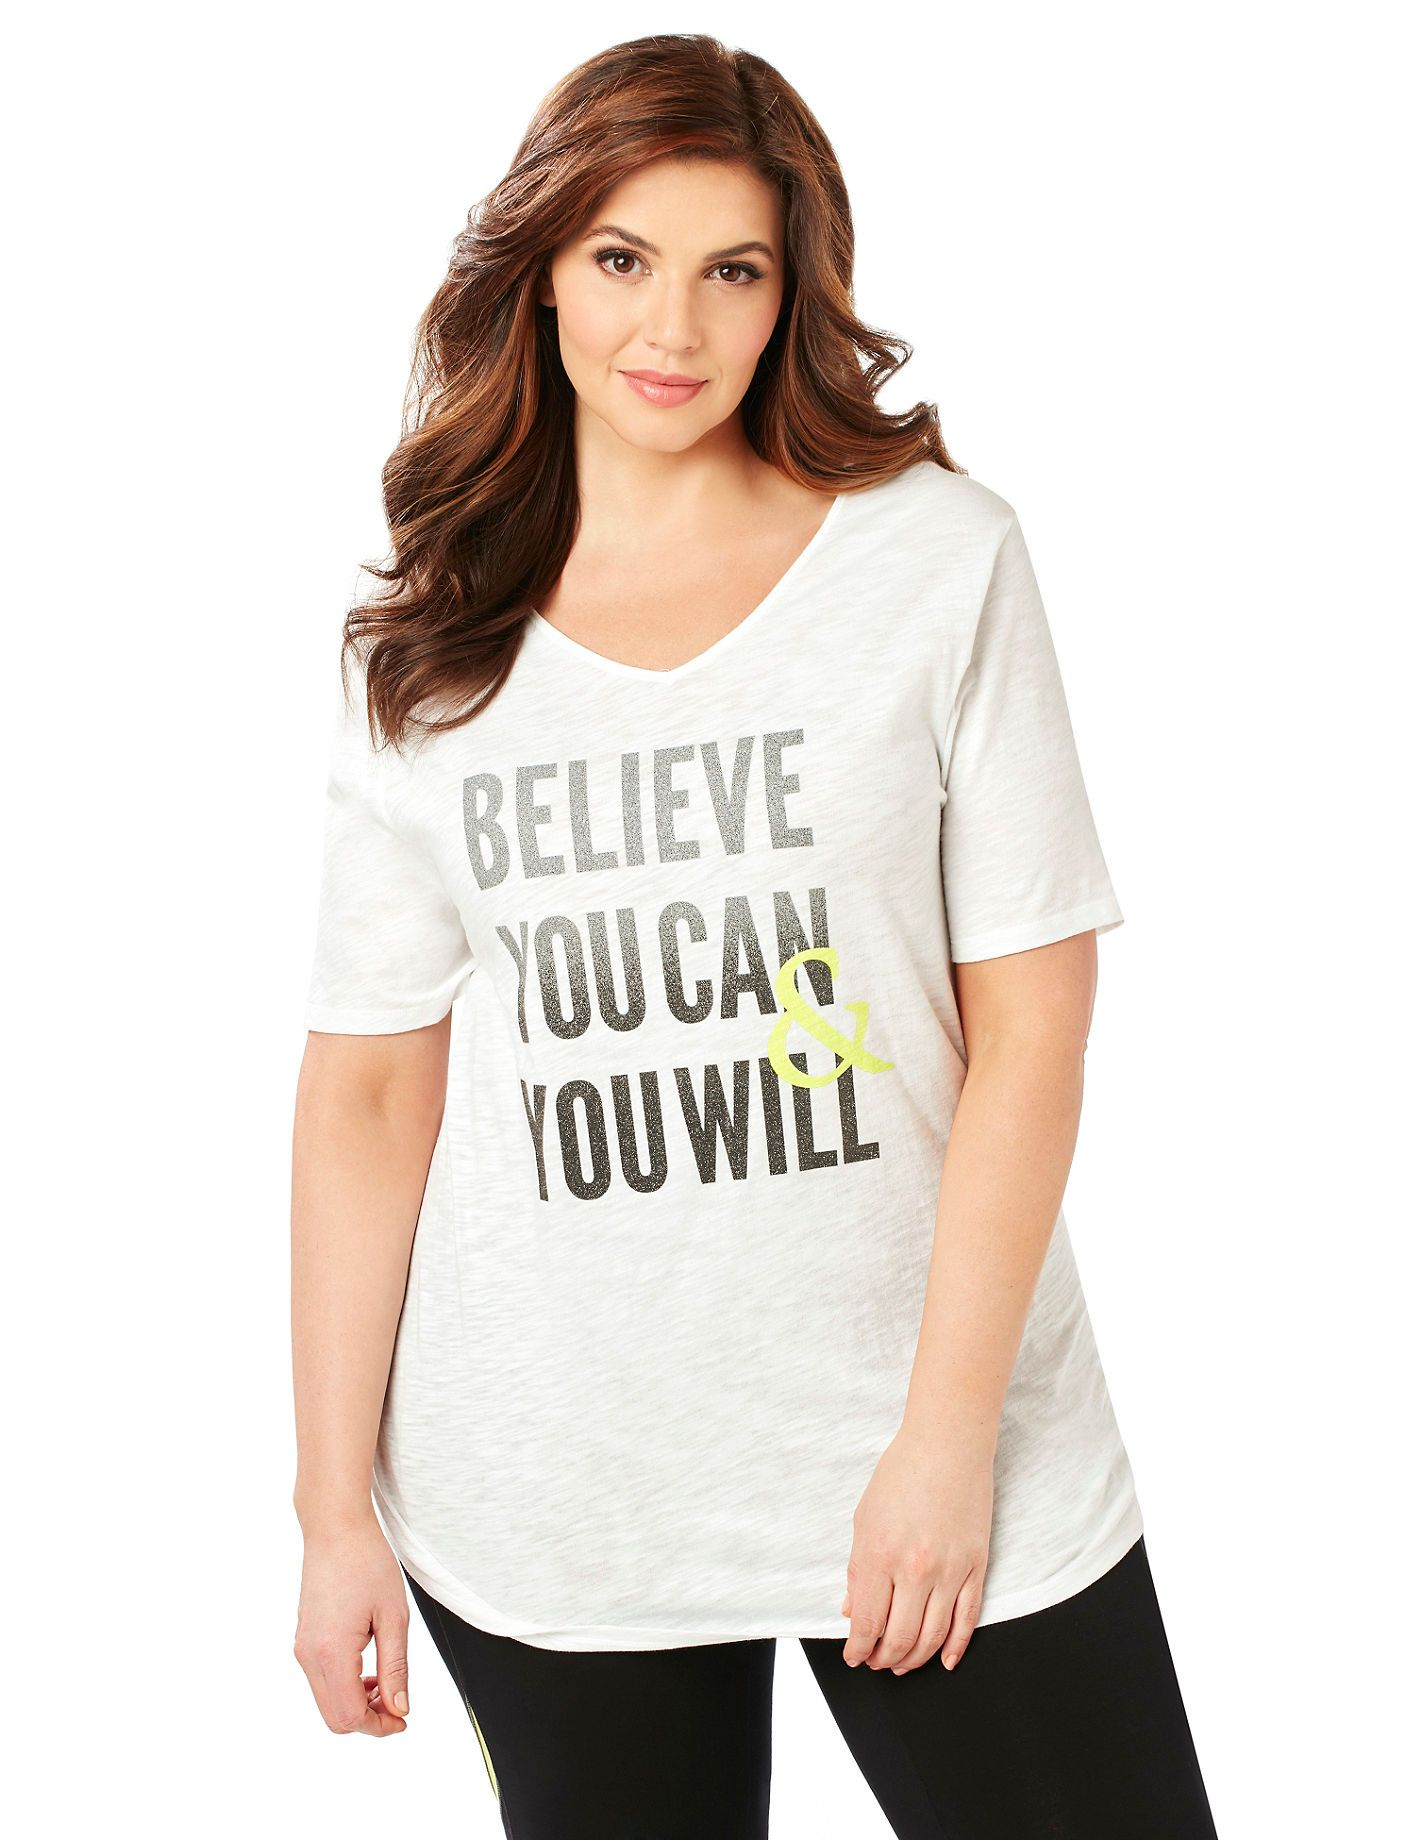 Believe Tee | Catherines  Our inspirational tee offers positive words of encouragement to keep you motivated all day long. The soft slub knit fabric is breathable and relaxed, while the keyhole back detail adds interest. Solid back. V-neckline. Short sleeves. Catherines tops are designed for the plus size woman to guarantee a flattering fit. #catherinesplus #plussize #plussizefashion #believeinyourself #activewear